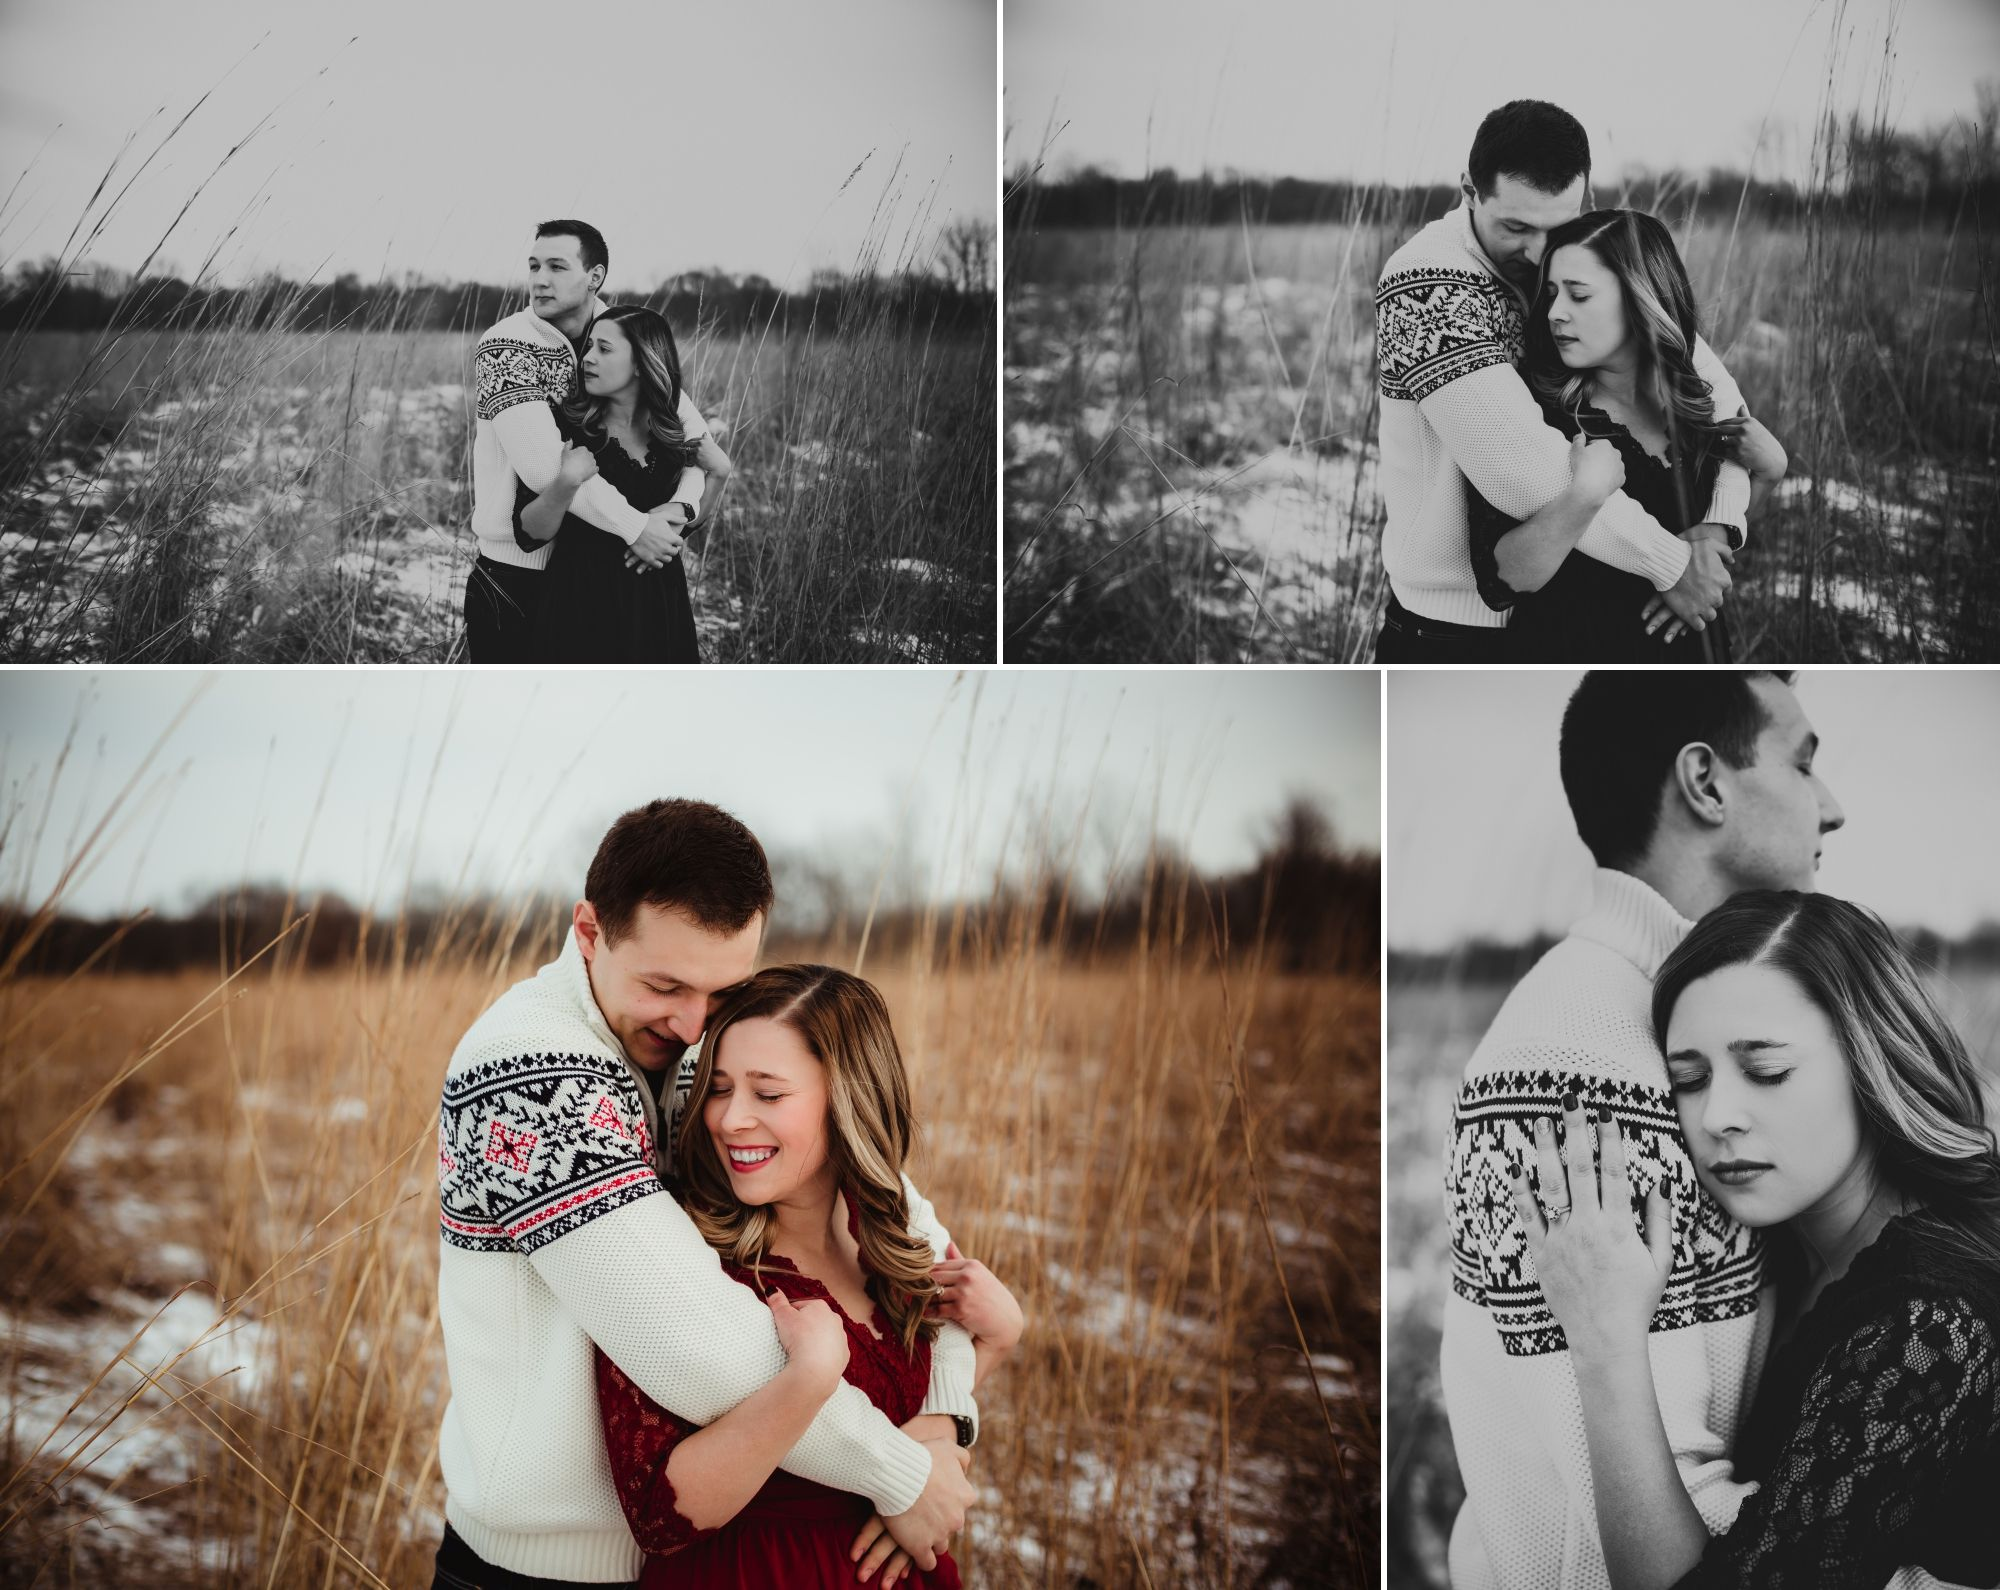 A collage of an engaged couple embracing in a field. Long brown grass pokes through the snow.